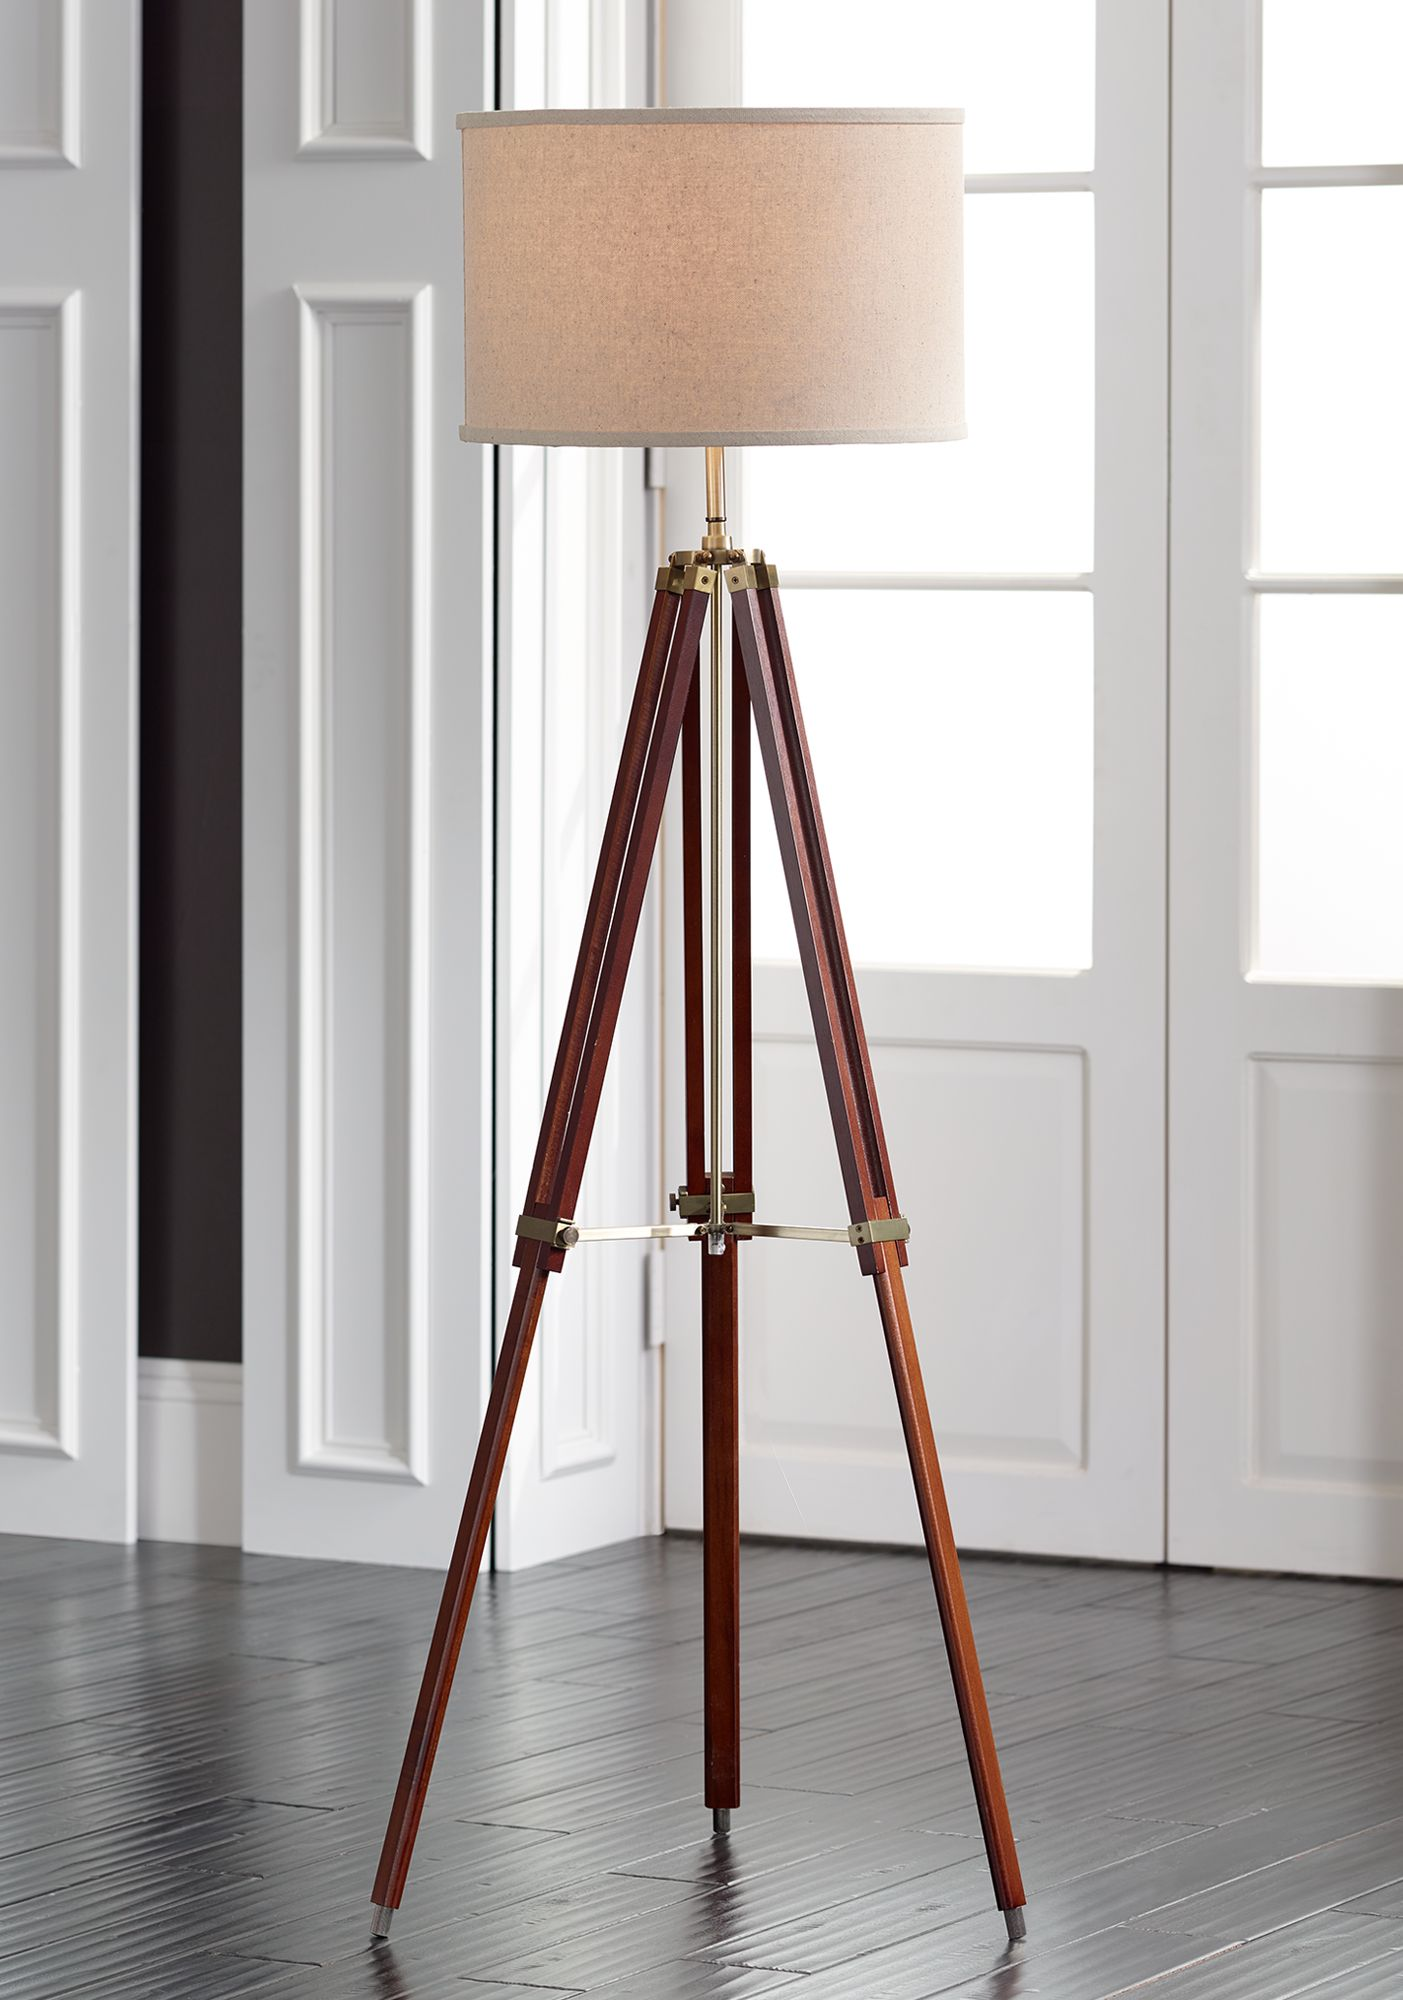 Possini Euro Cherry Finish Wood Surveyor Tripod Floor Lamp